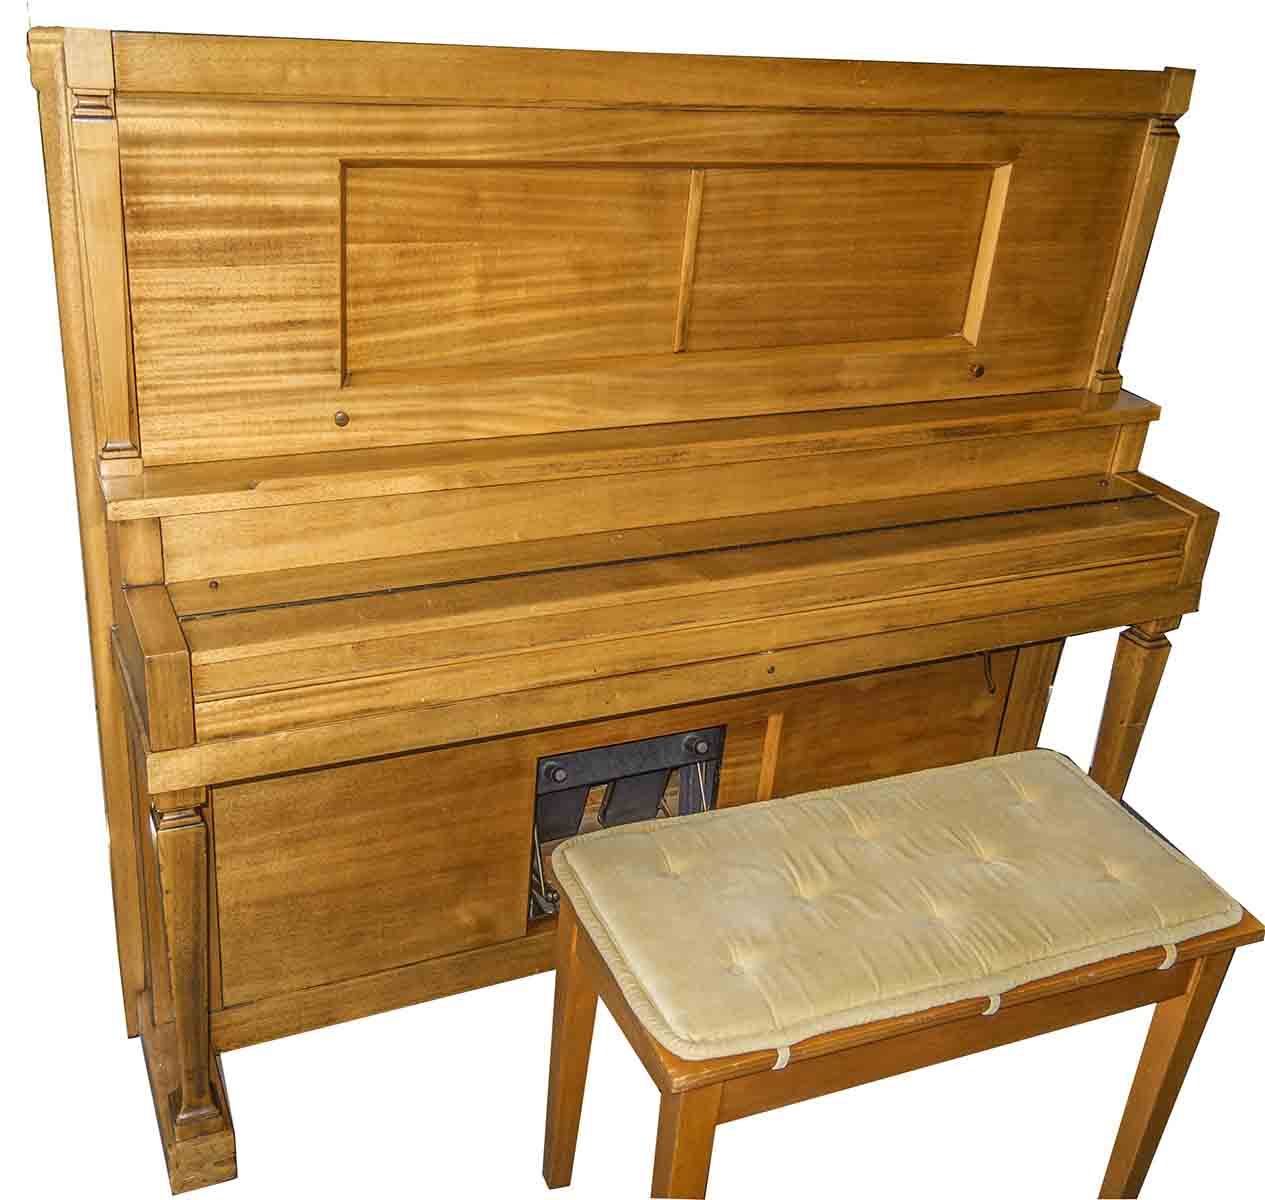 Mason Player Piano With 300 Music Rolls (Honk-Tonk Bar/Saloon)